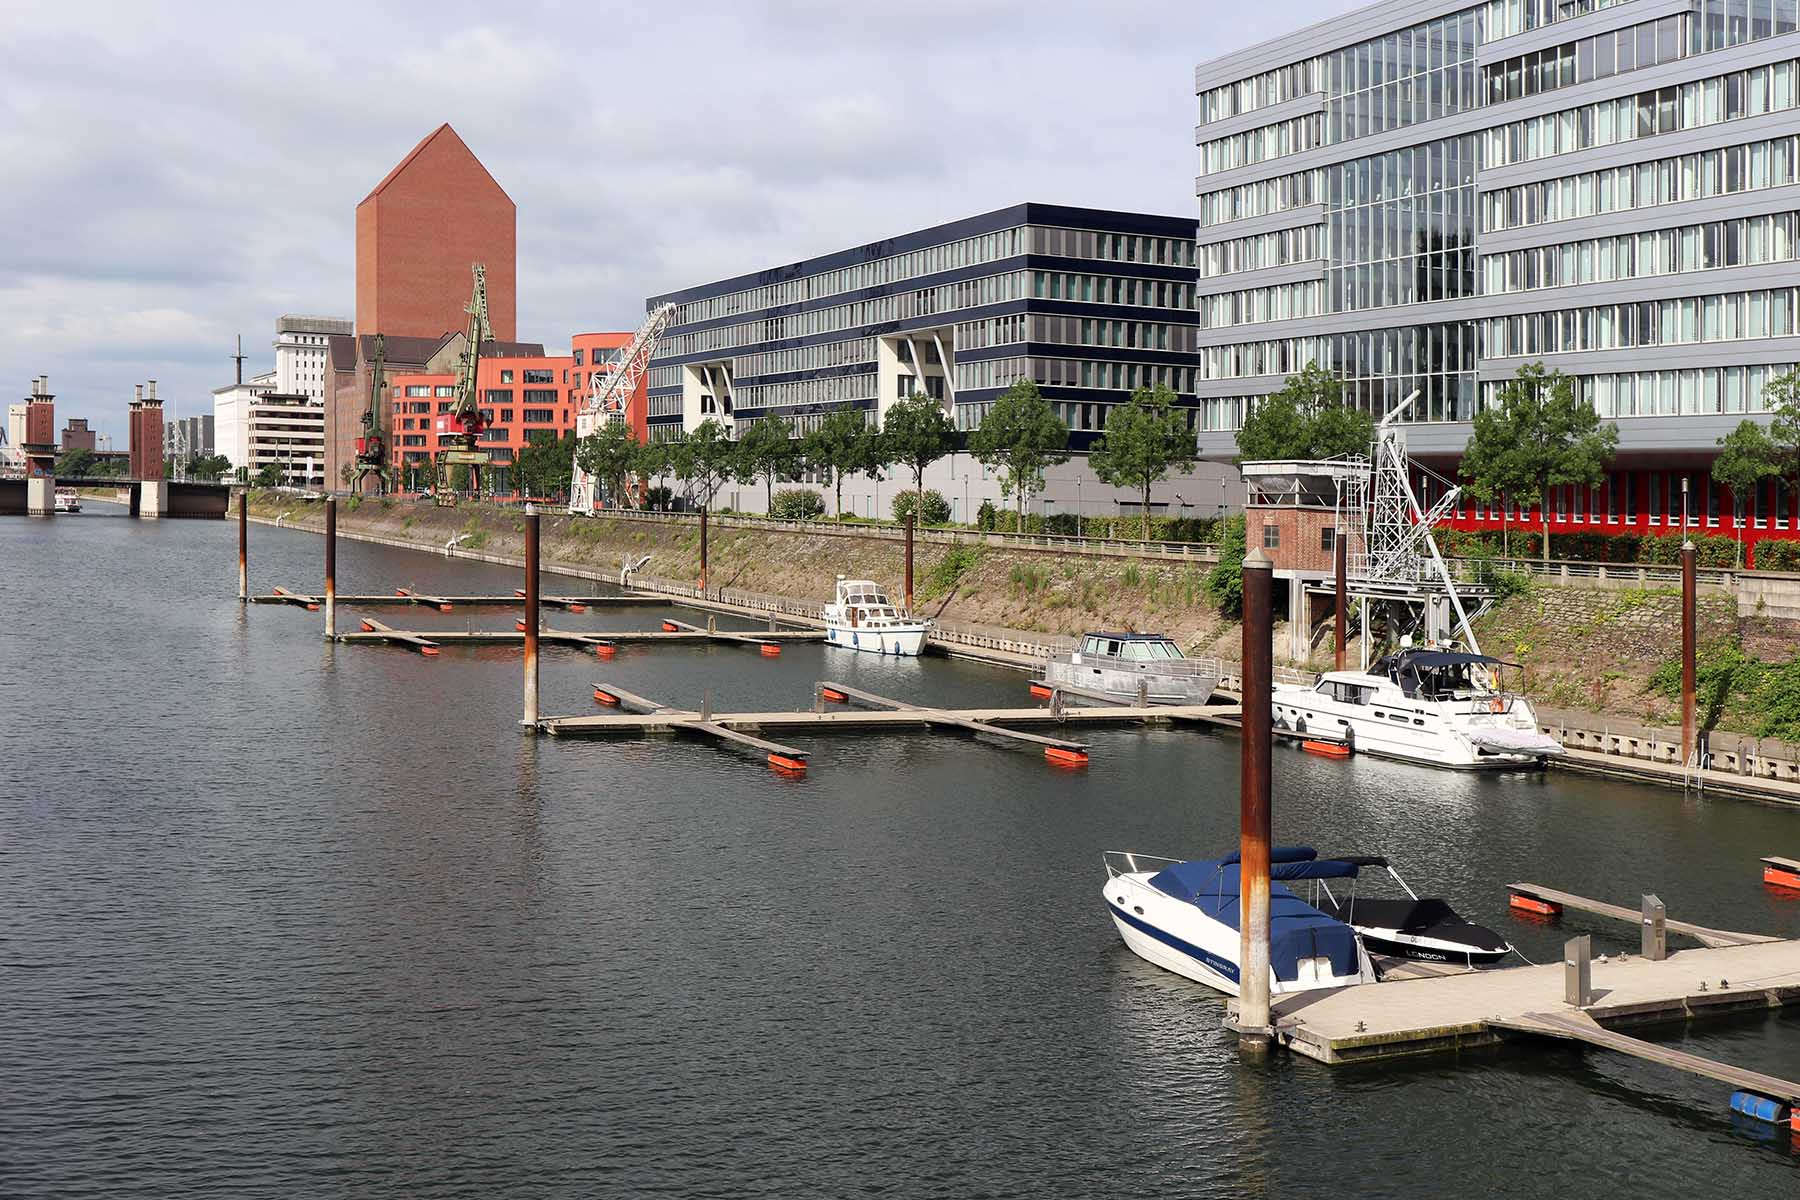 Innenhafen Duisburg.  The Marina with the Landesarchiv NRW, the state archive of North Rhine Westphalia, by Ortner & Ortner Baukunst.